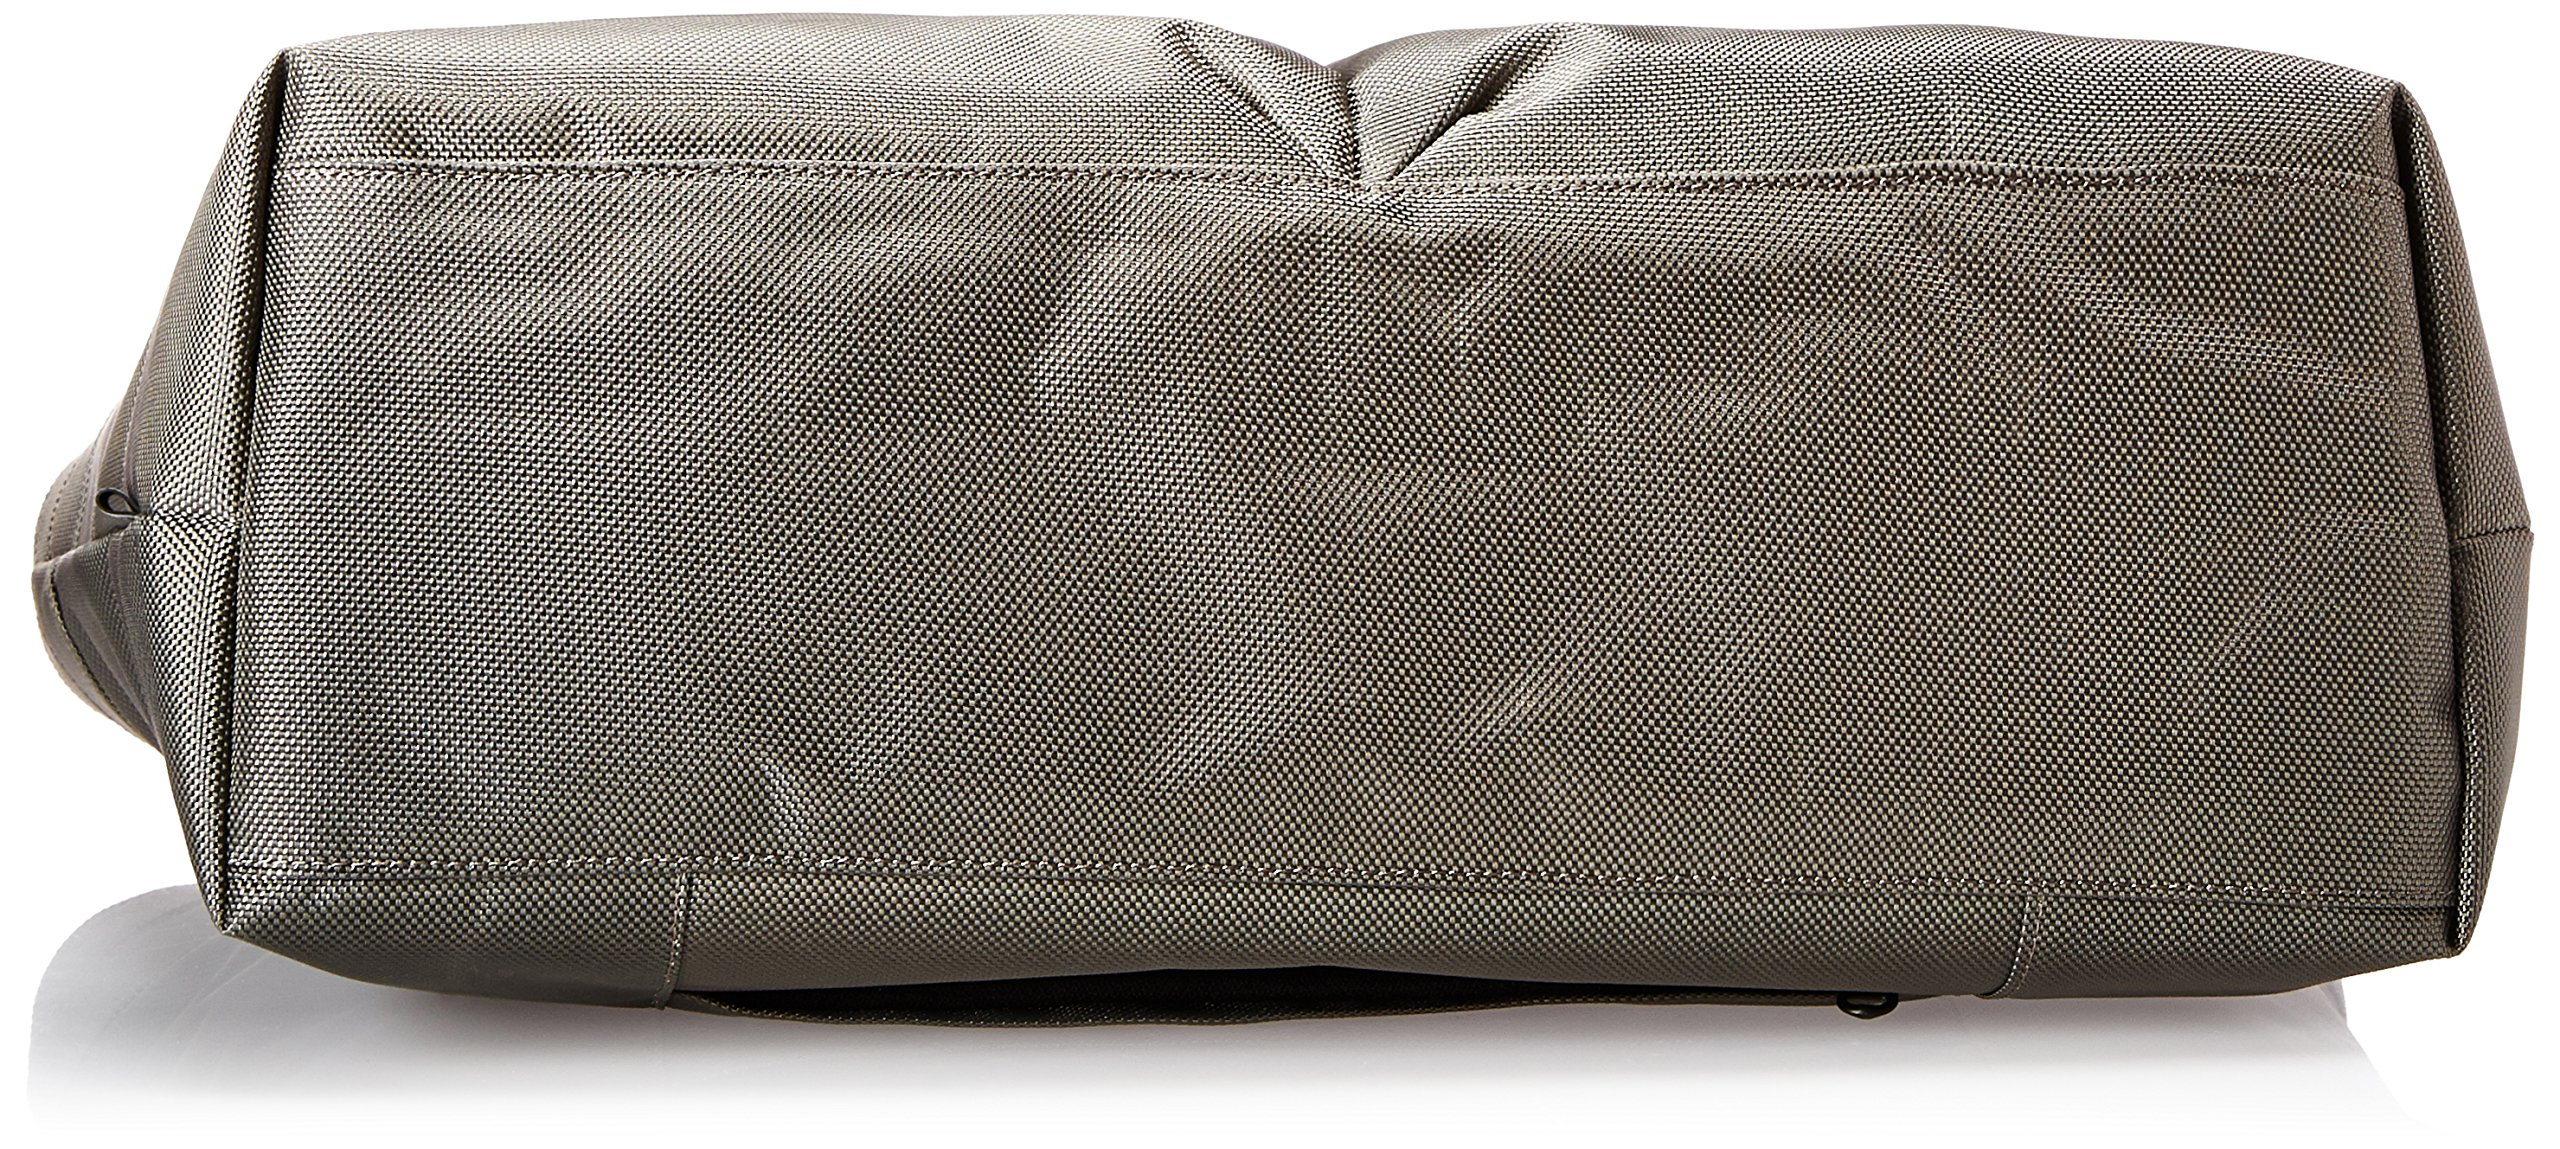 Victorinox Werks Traveler 5.0 WT Shopping Tote, Olive Green, One Size by Victorinox (Image #5)